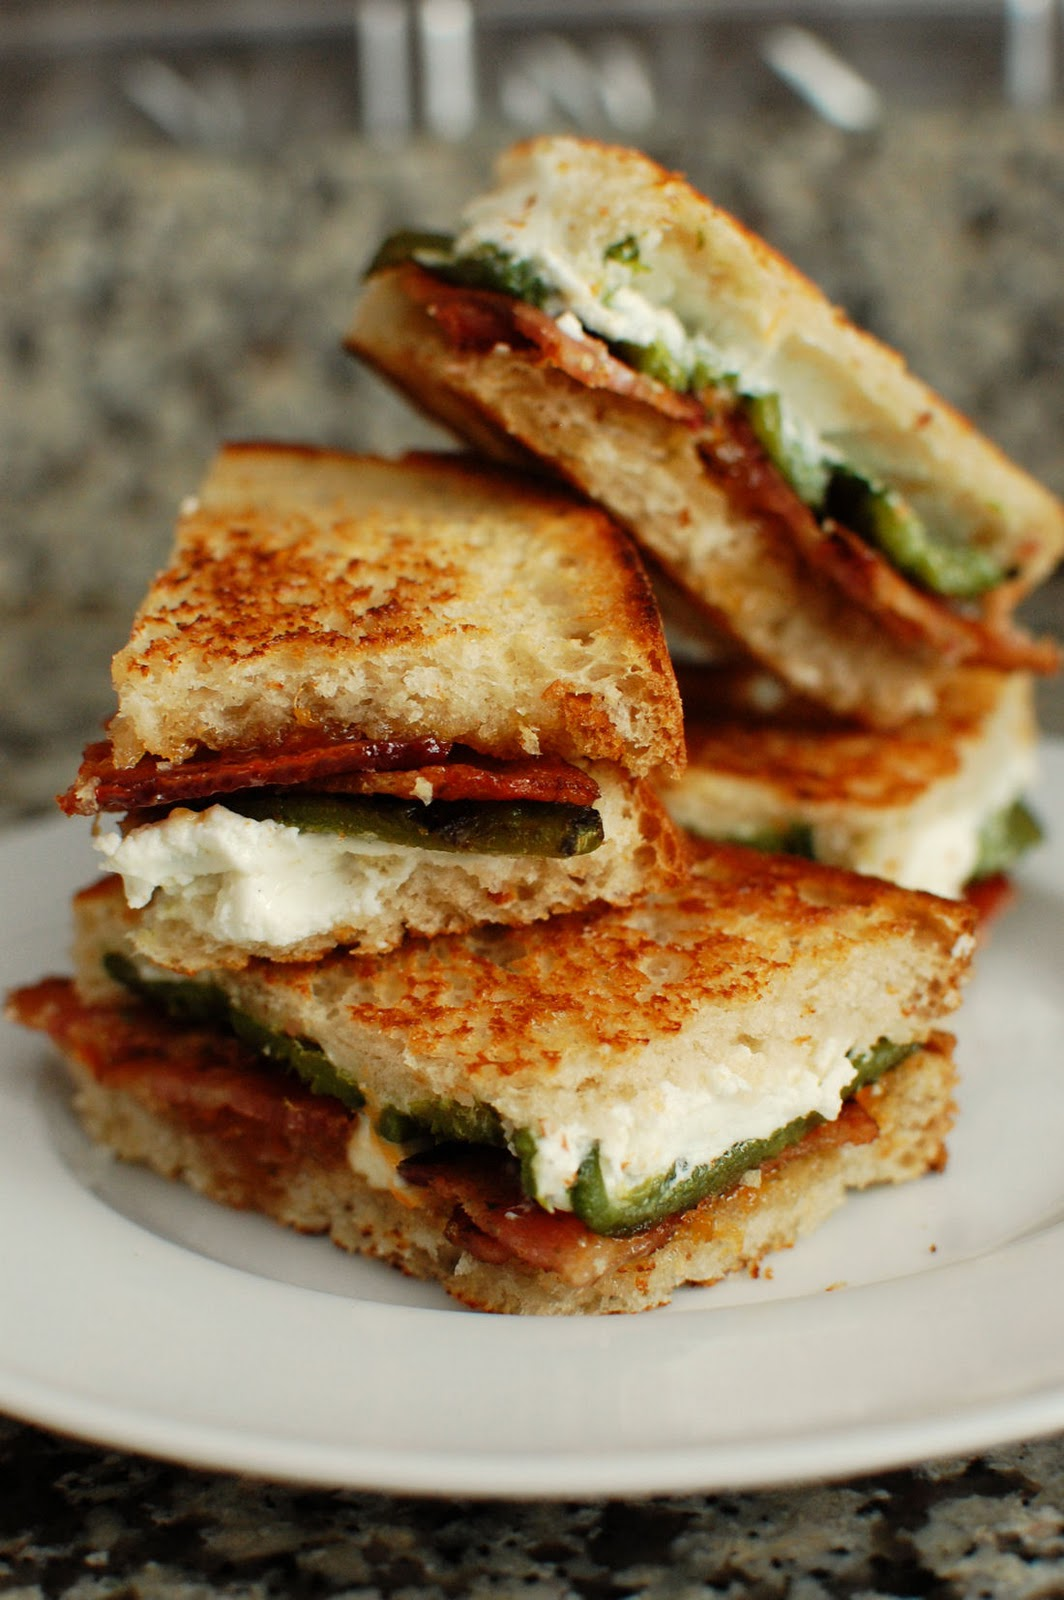 Jalapeno Popper Inspired Grilled Cheese | Beantown Baker